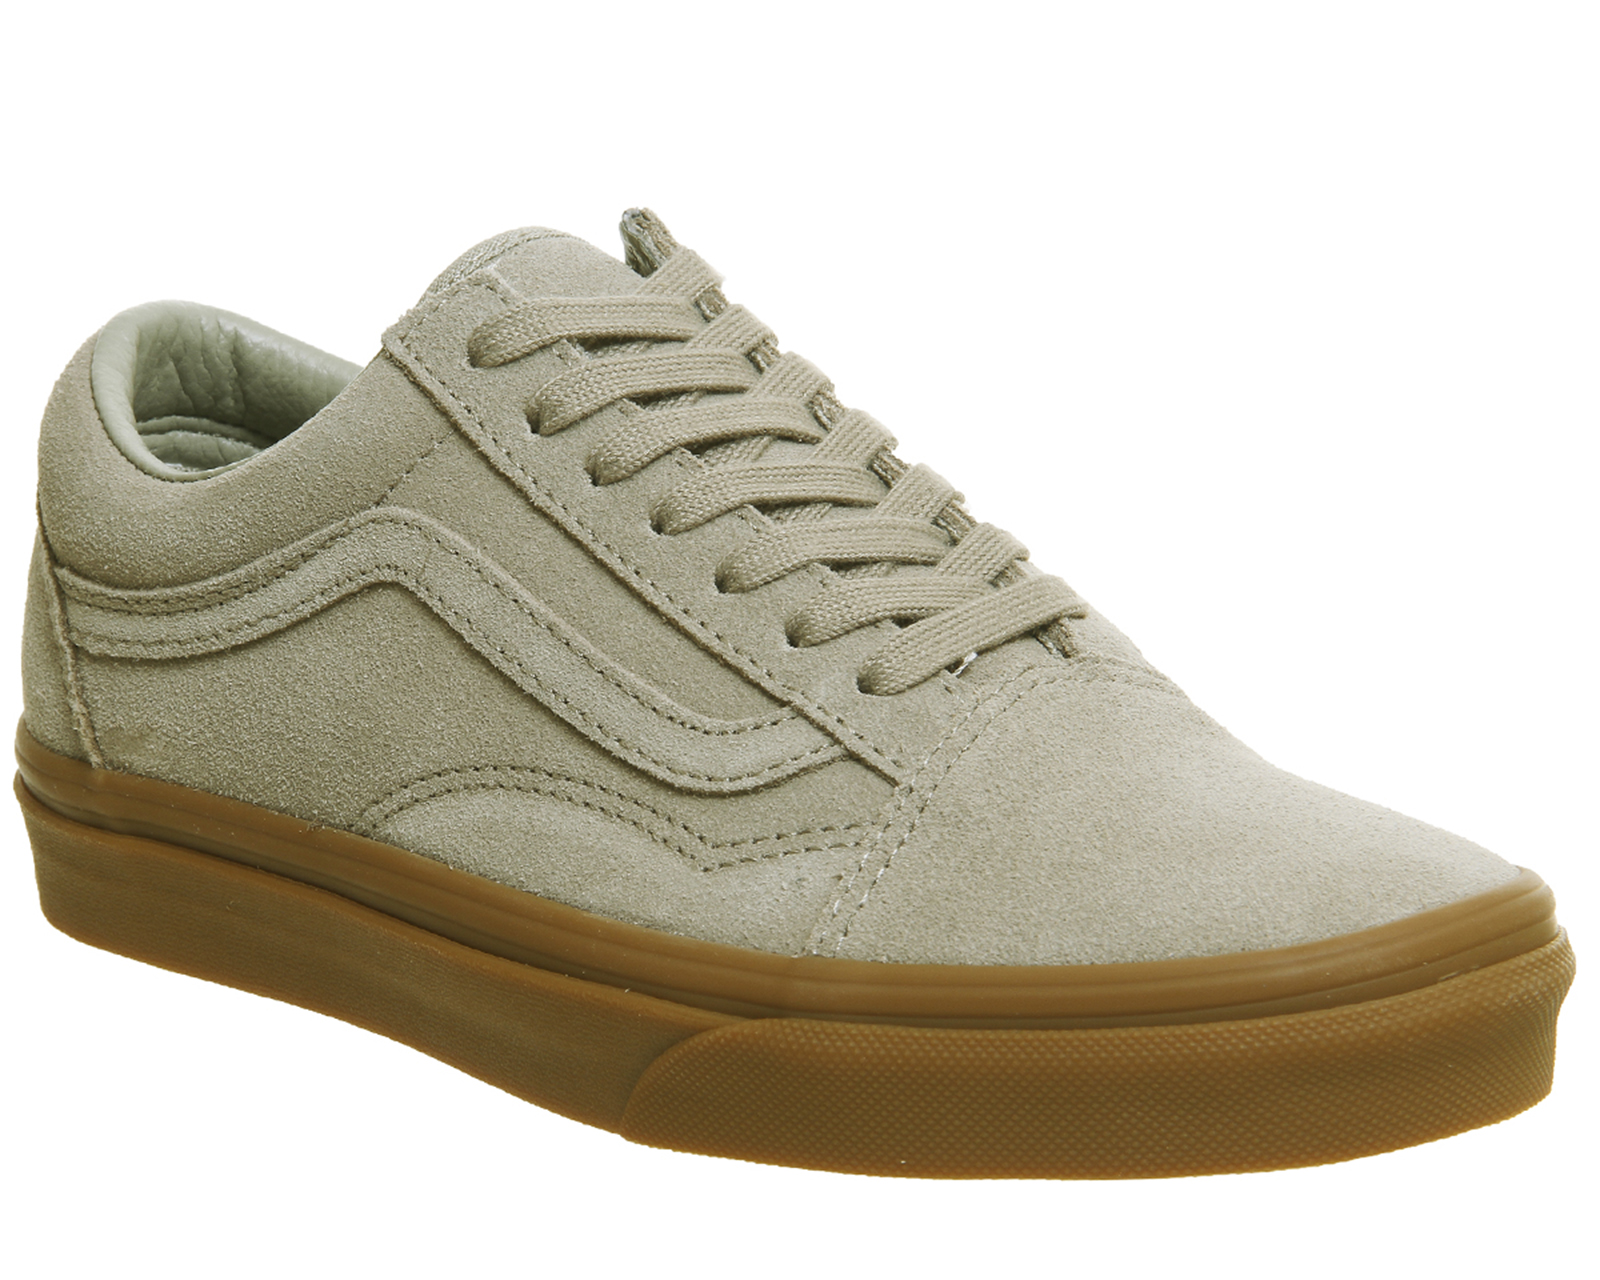 d2cc10e14cf Sentinel Mens Vans Old Skool Trainers Light Khaki Gum Exclusive Trainers  Shoes